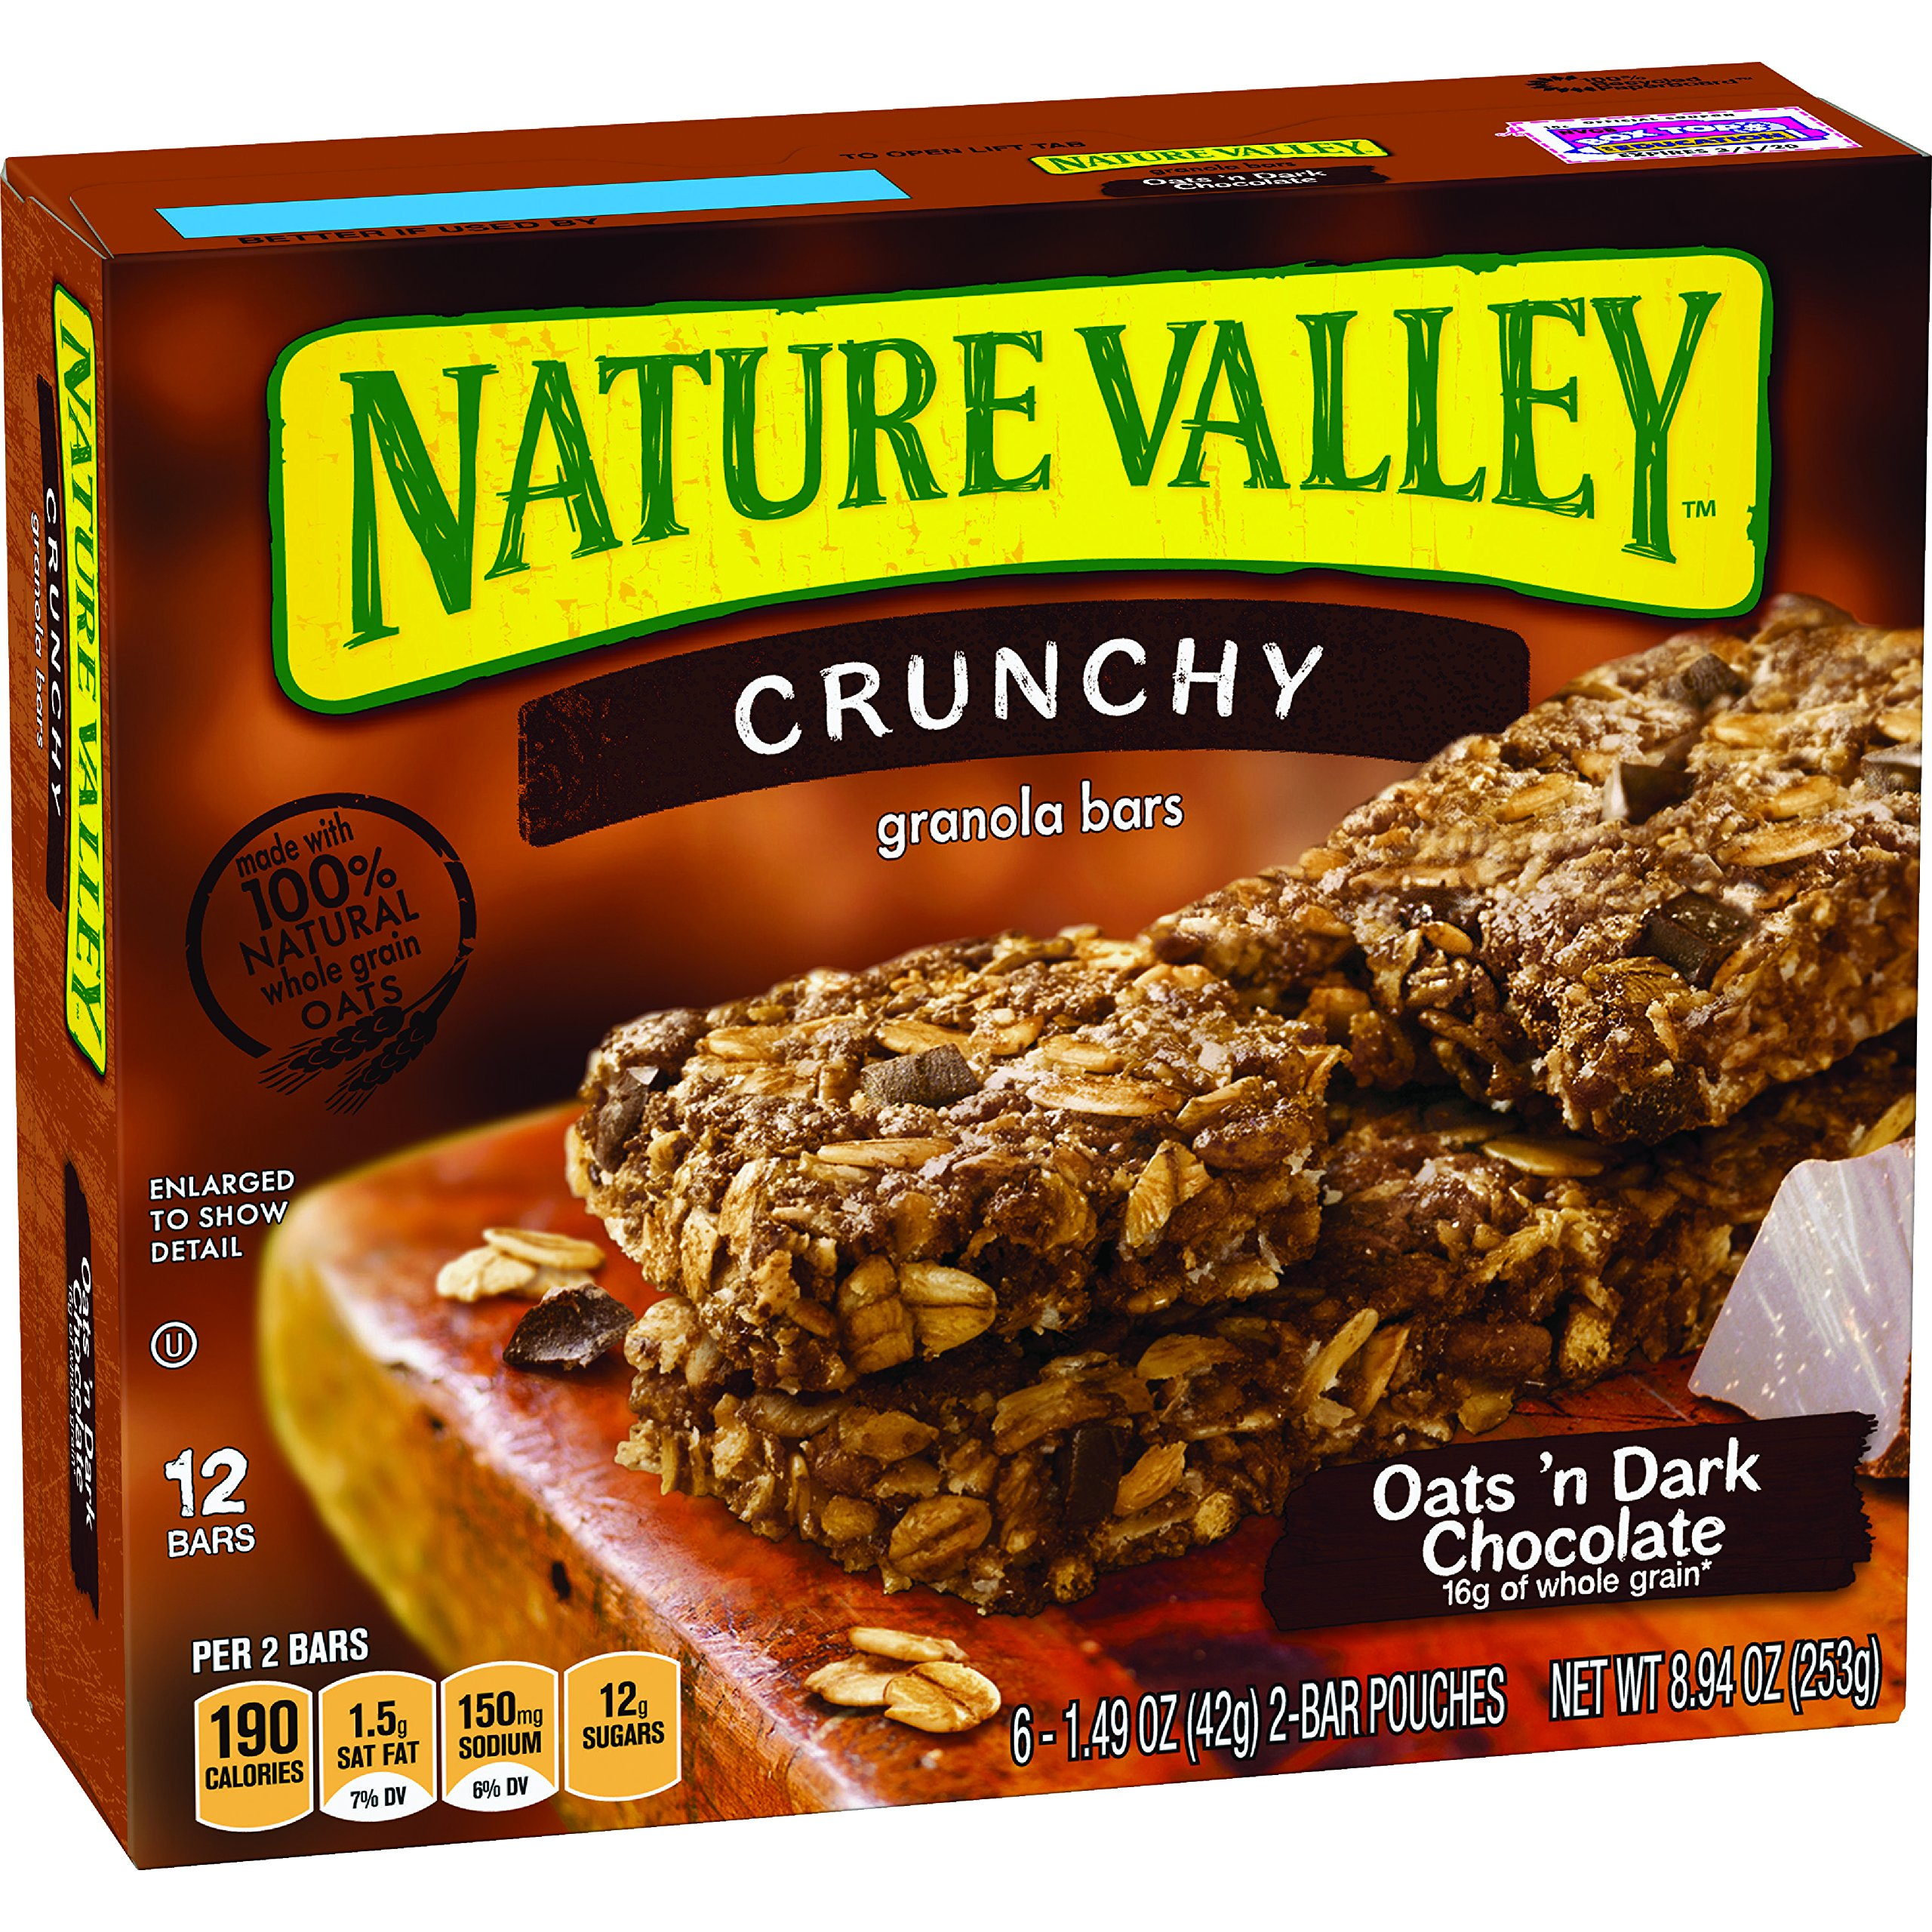 Nature Valley Granola Bars, Crunchy, Oats and Dark Chocolate, 12 Count, Pack of 6 by Nature Valley